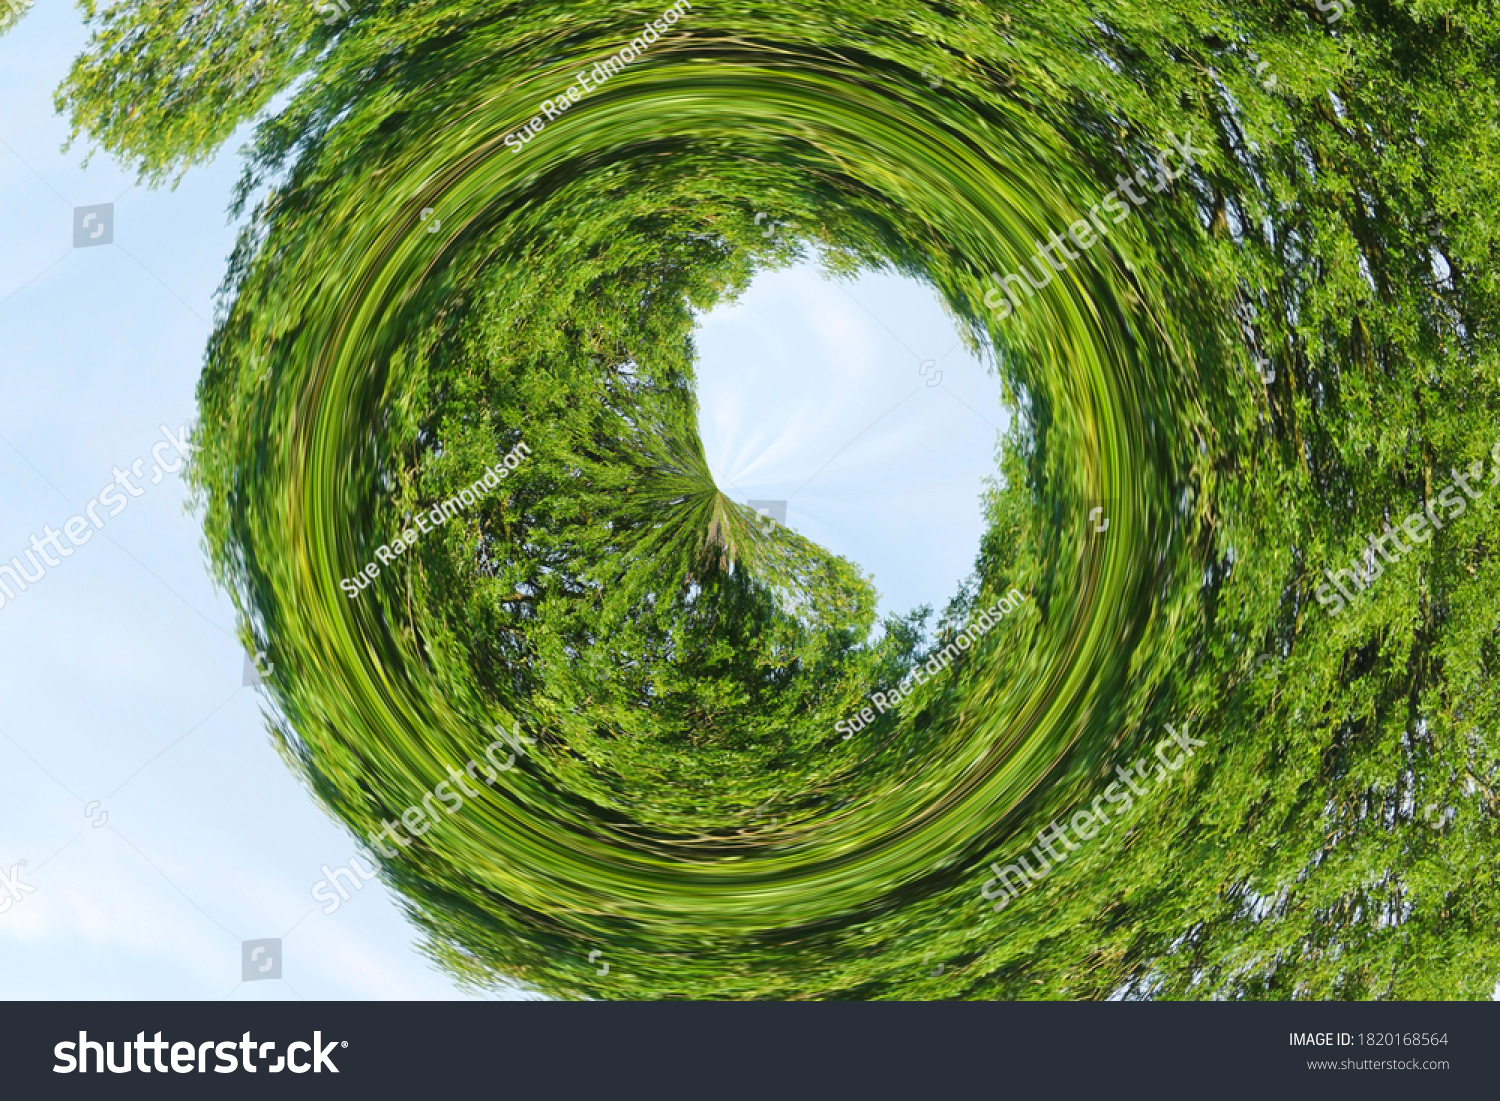 stock-photo-abstract-background-circular